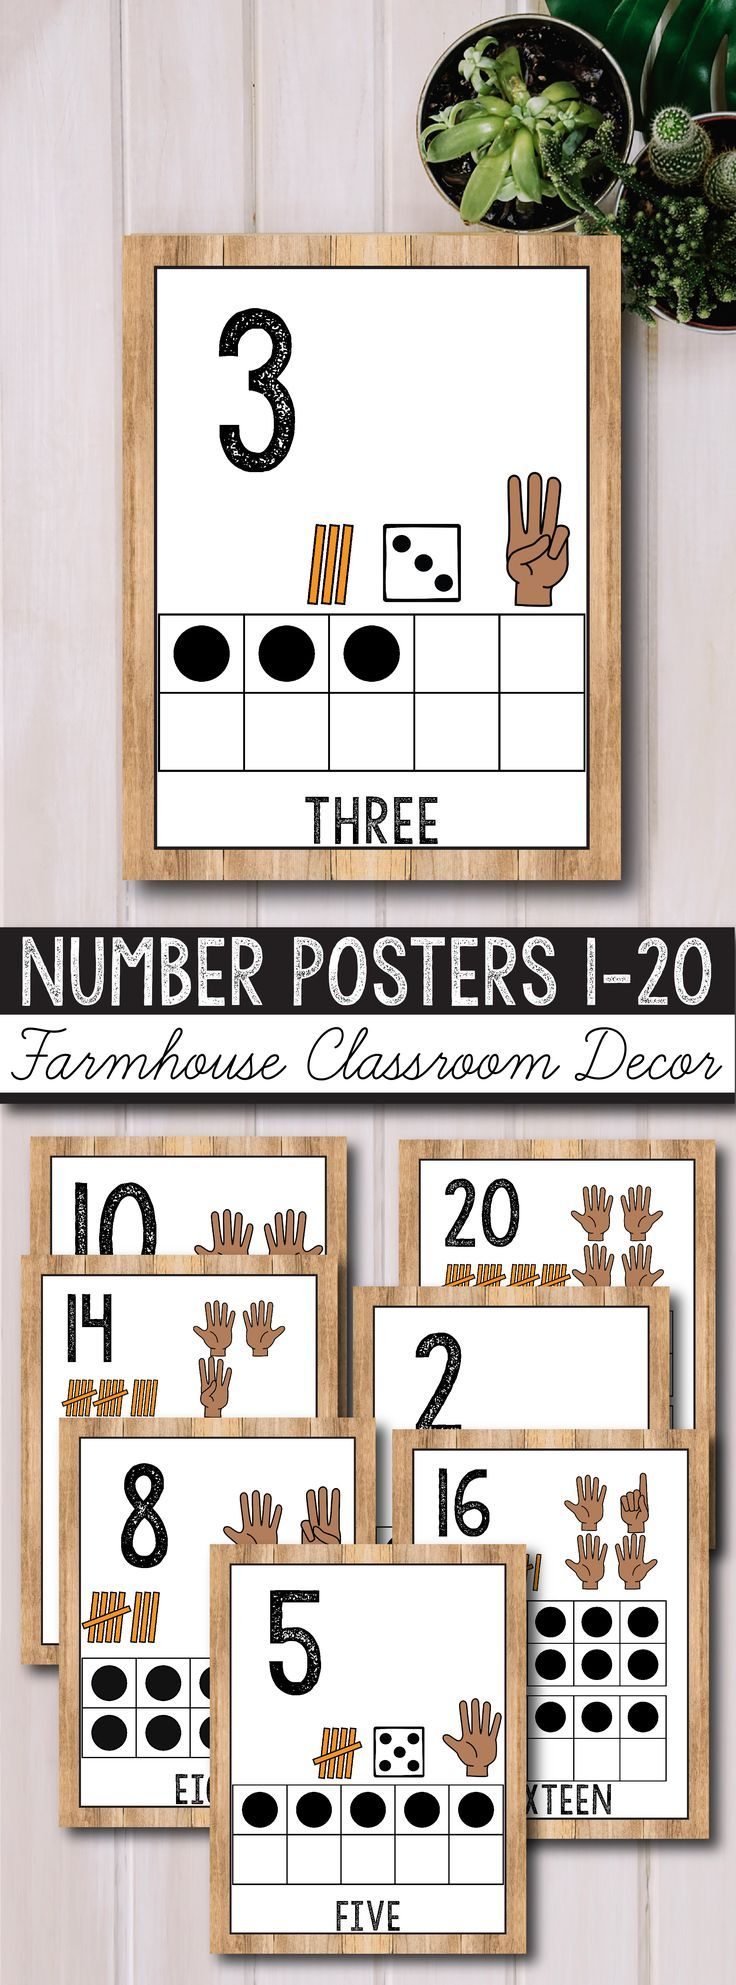 Number Posters 0-20 - Farmhouse Theme, Rustic Classroom Decor Number Posters 0-20 - Farmhouse Theme